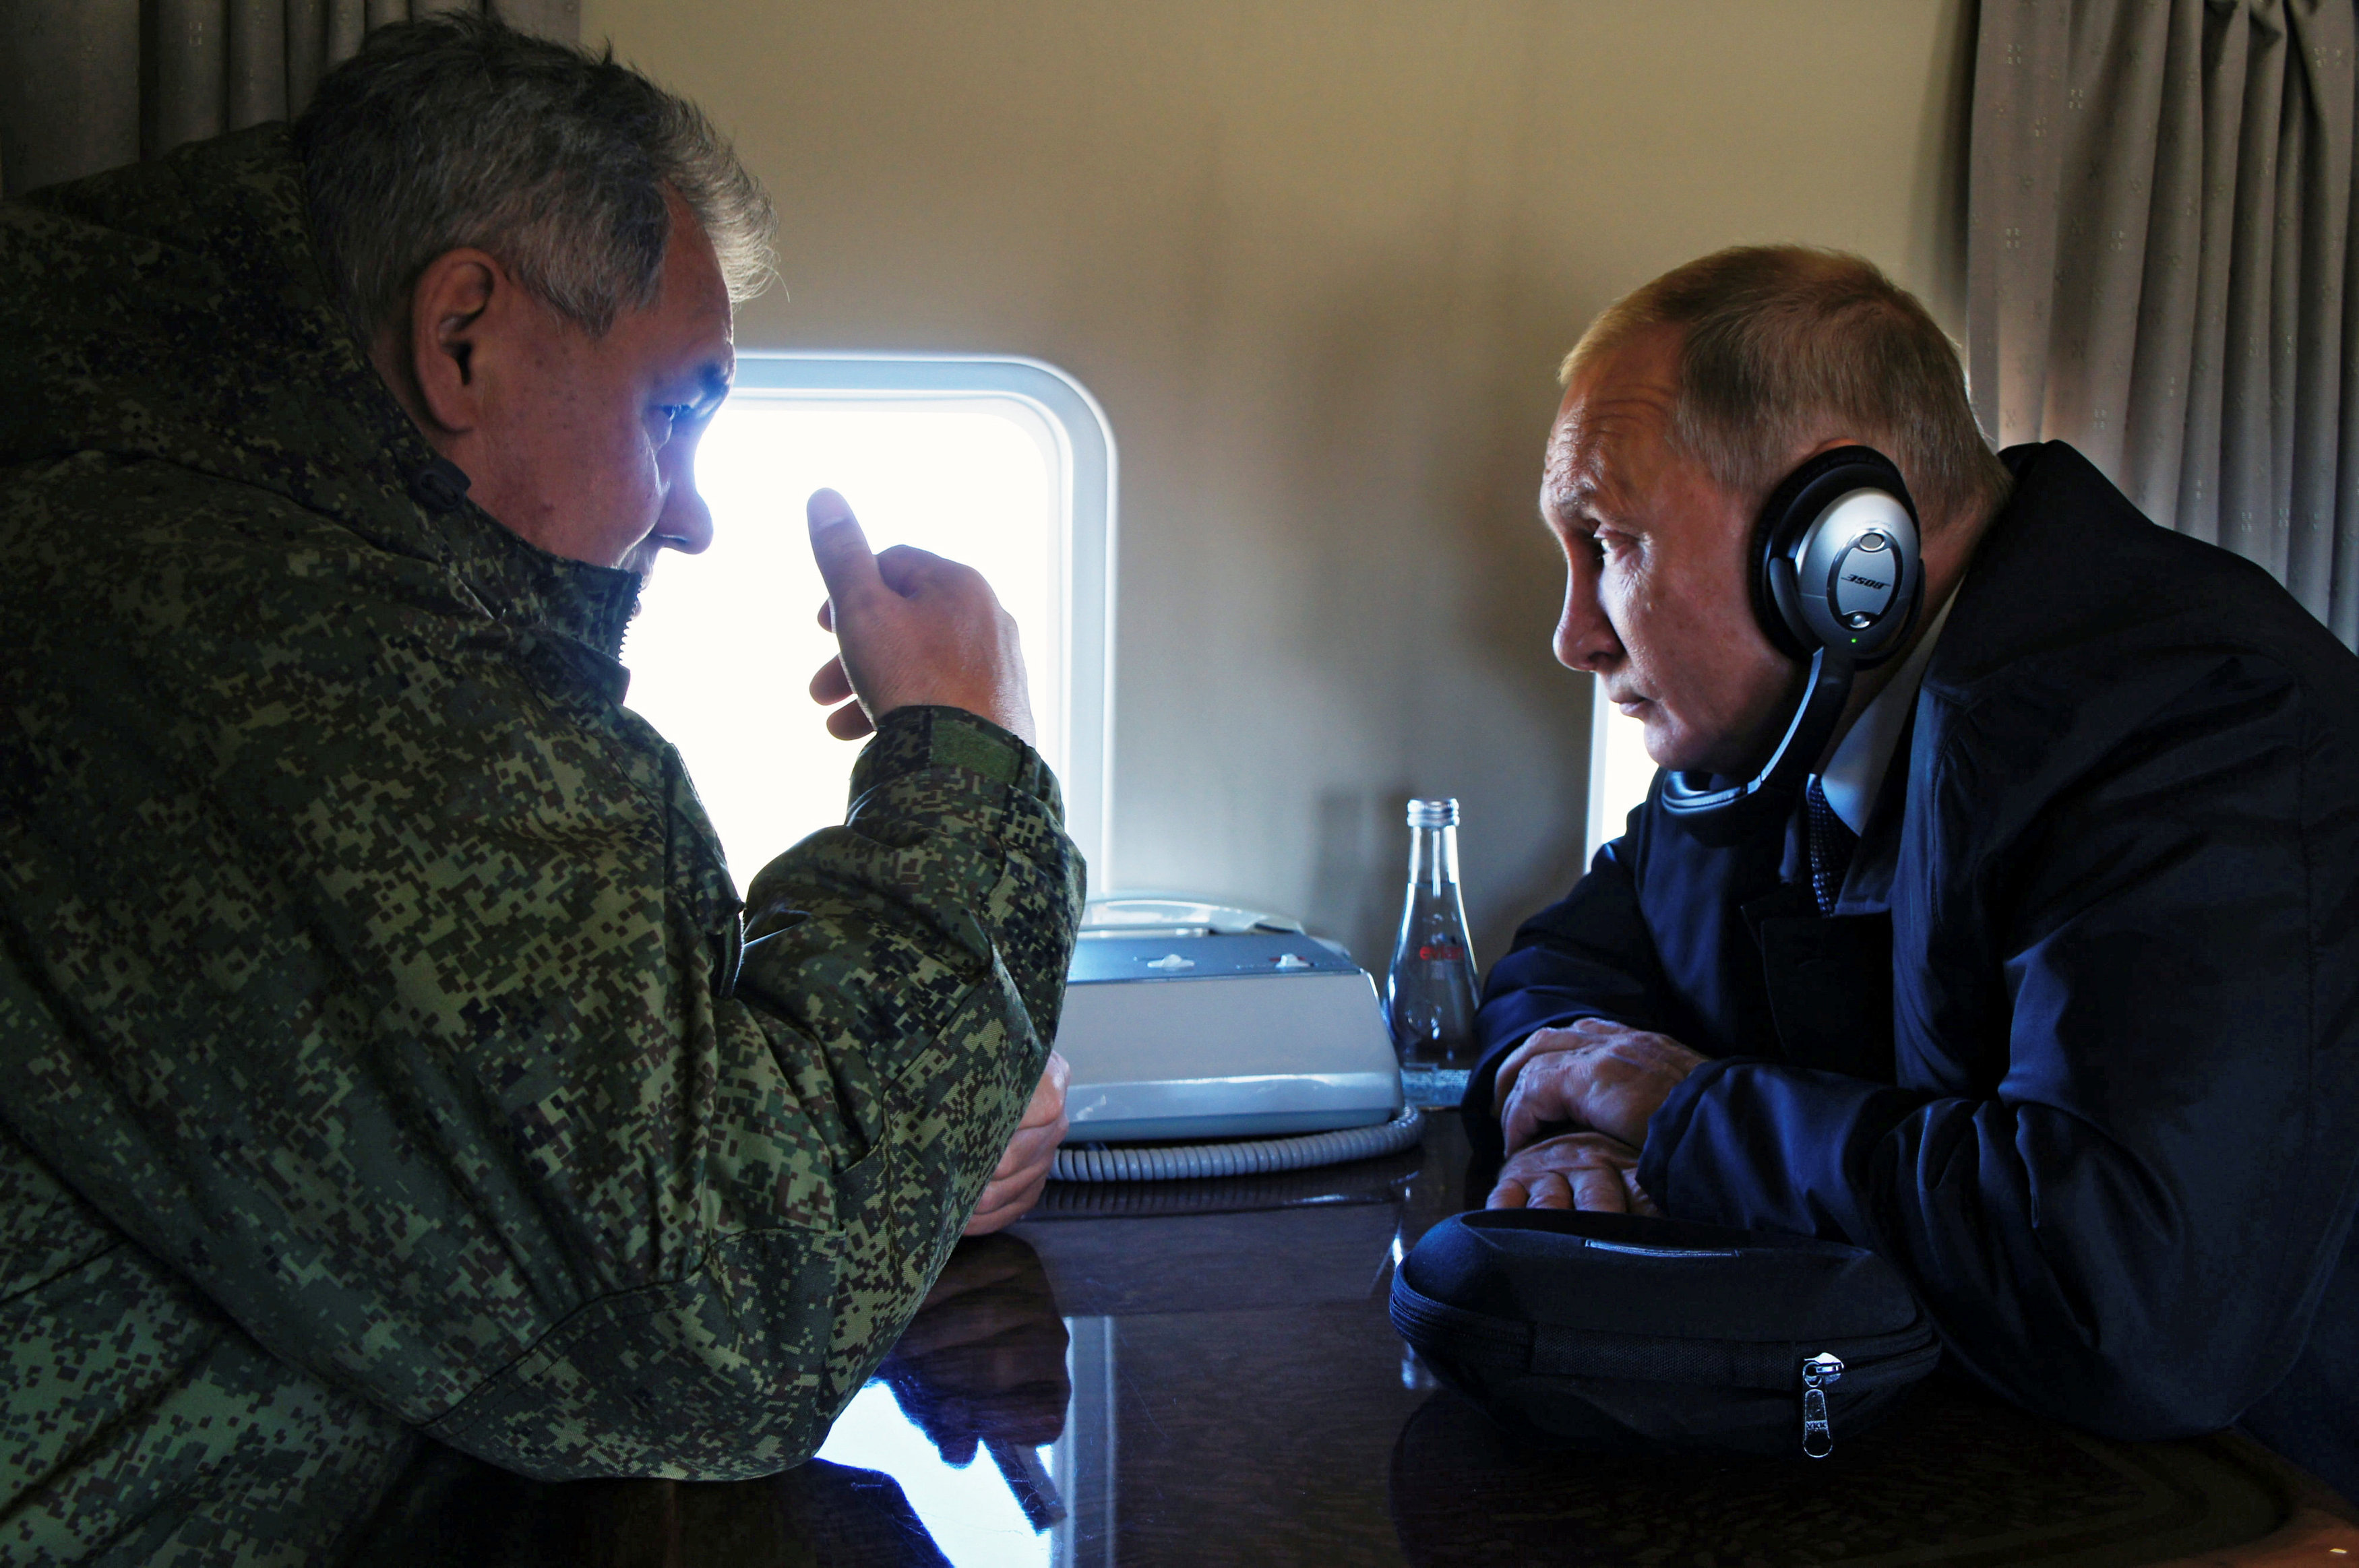 Russian President Vladimir Putin listens to Defence Minister Sergei Shoigu while flying over Tsugol training range in Zabaikalsky region, Russia, September 13, 2018. Sputnik/Alexei Nikolsky/Kremlin via REUTERS